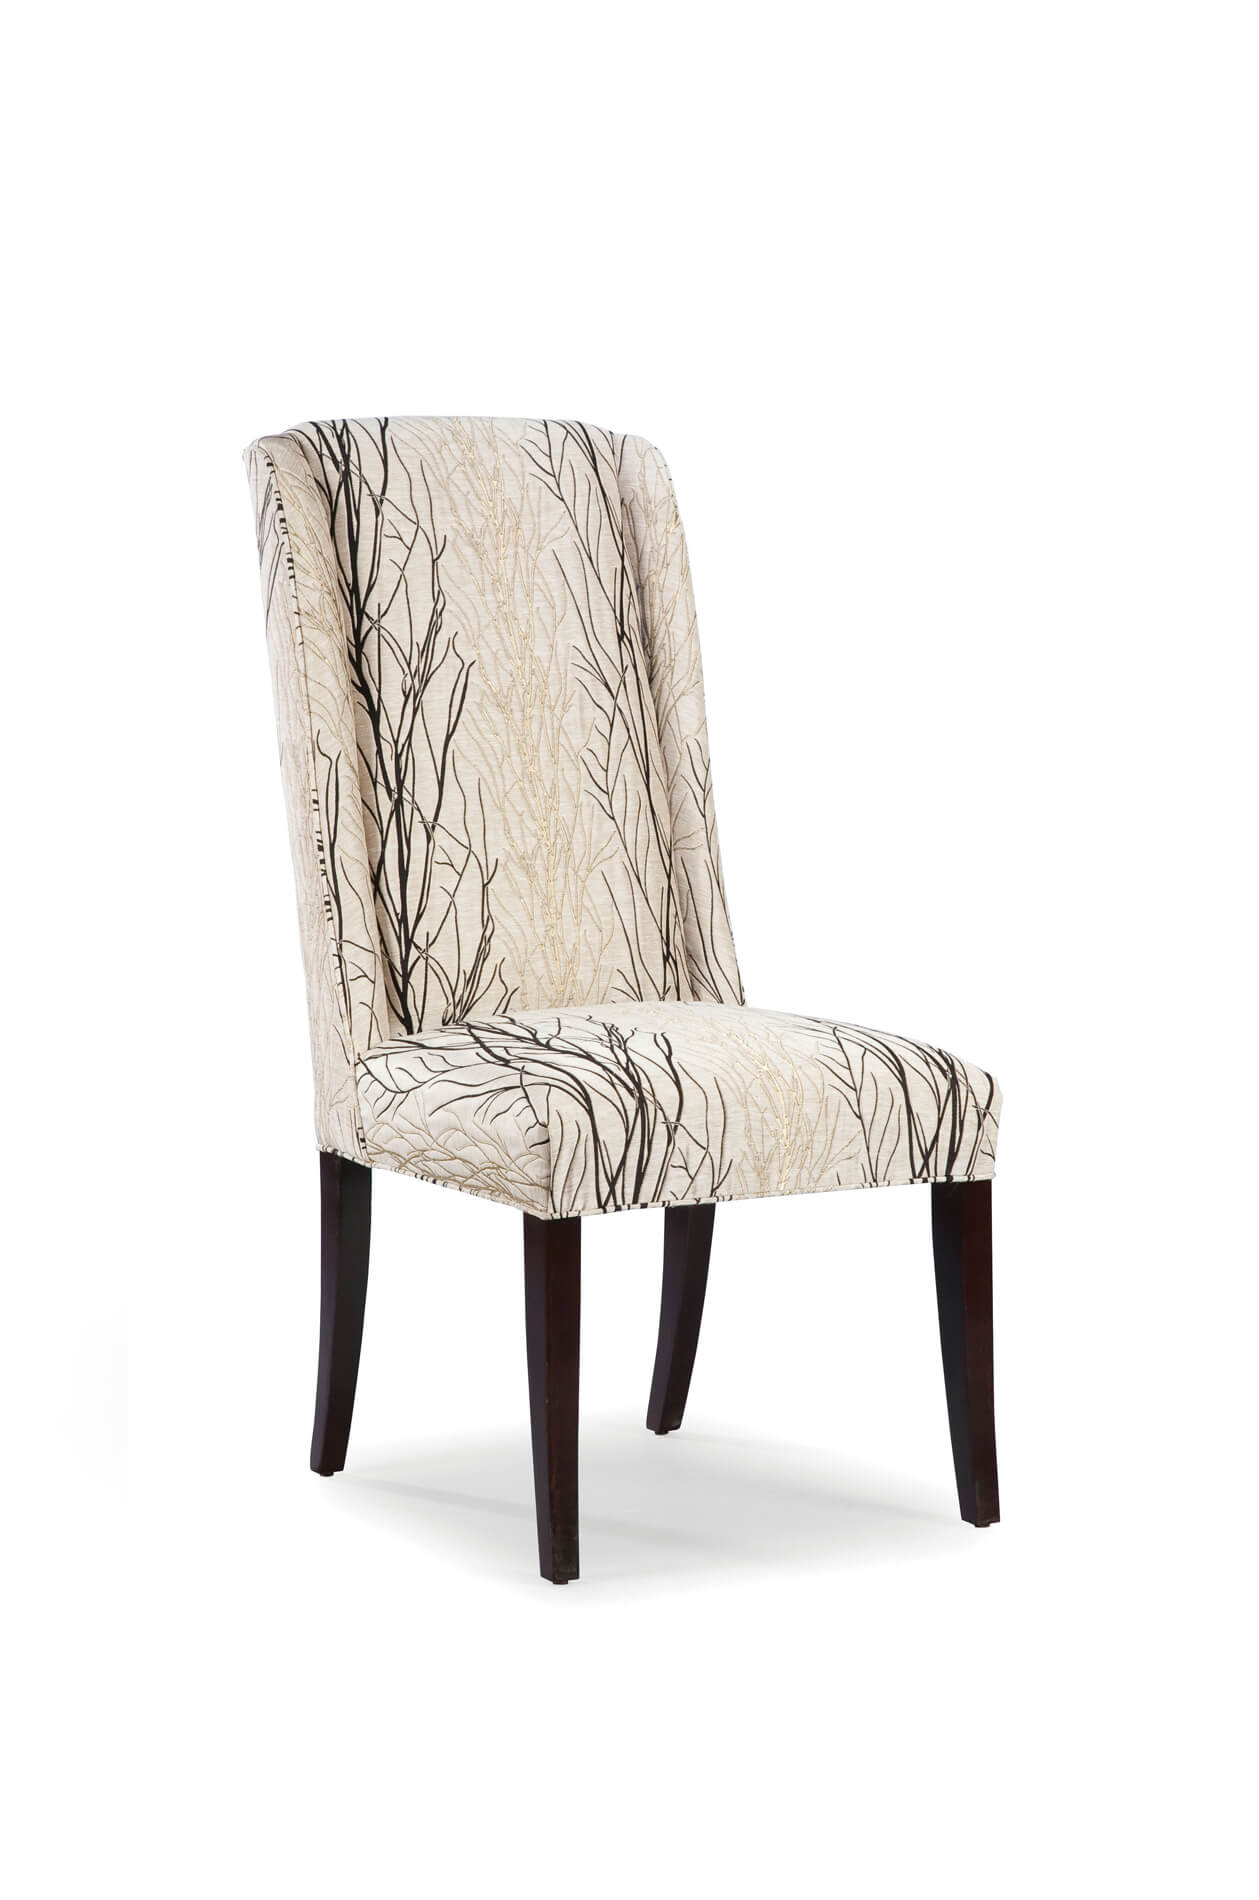 Fairfield's Dora High Back Upholstered Wooden Dining Chair